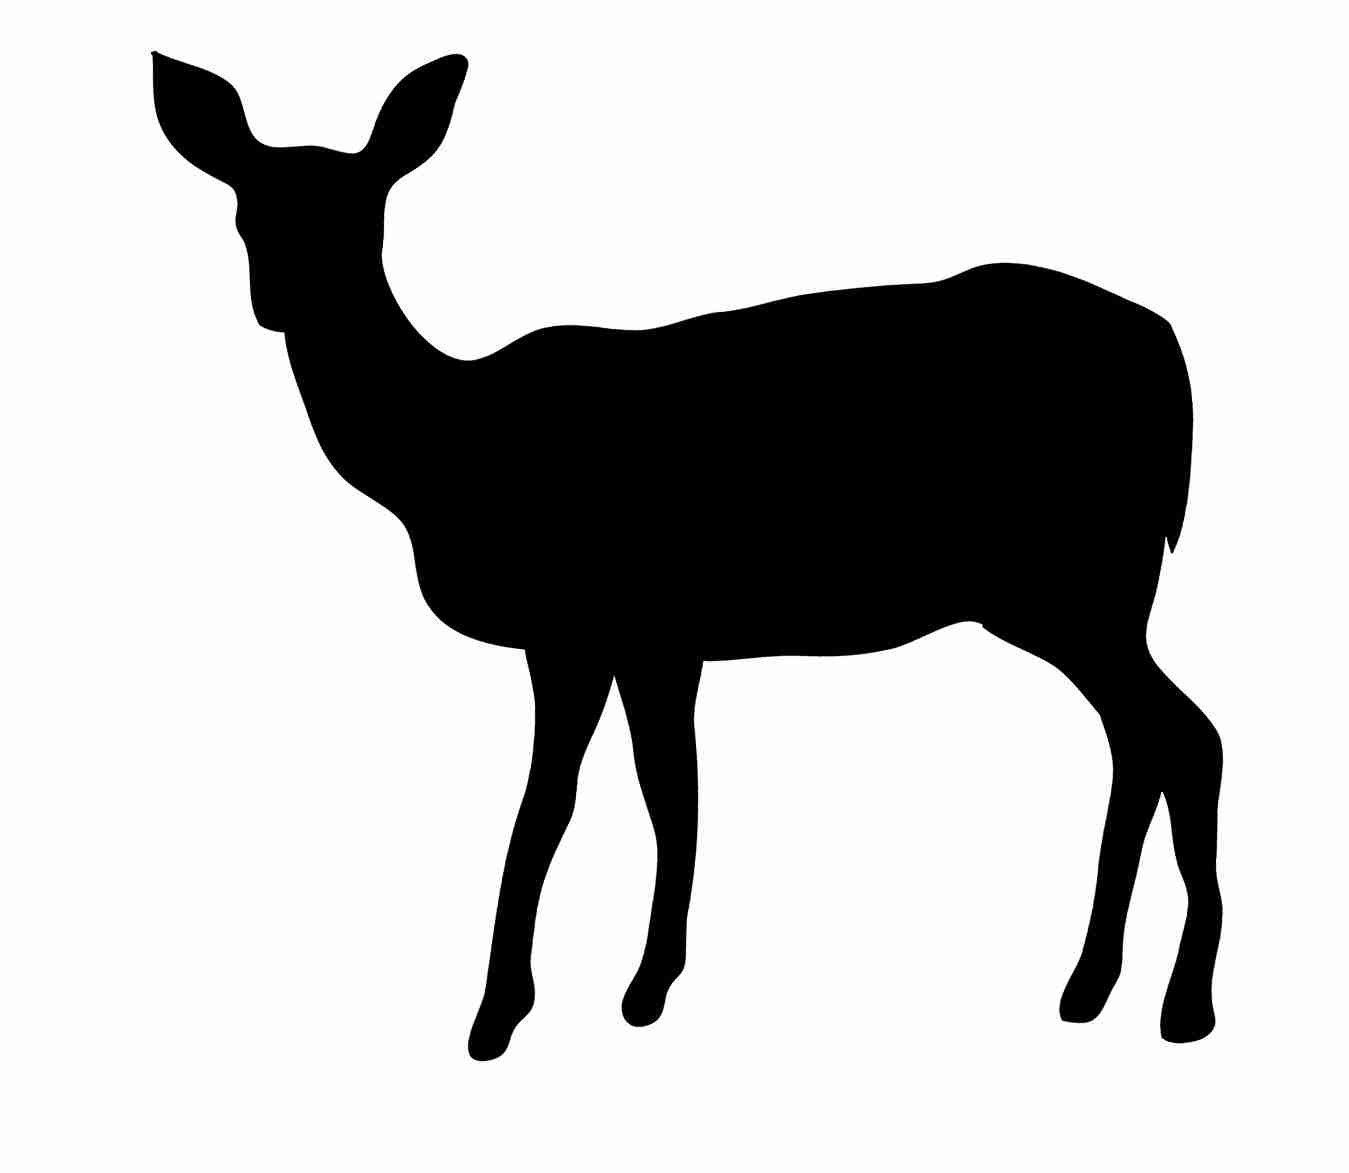 1349x1173 Free Deer Silhouette Download Clip Art On At Clipart Olegratiy